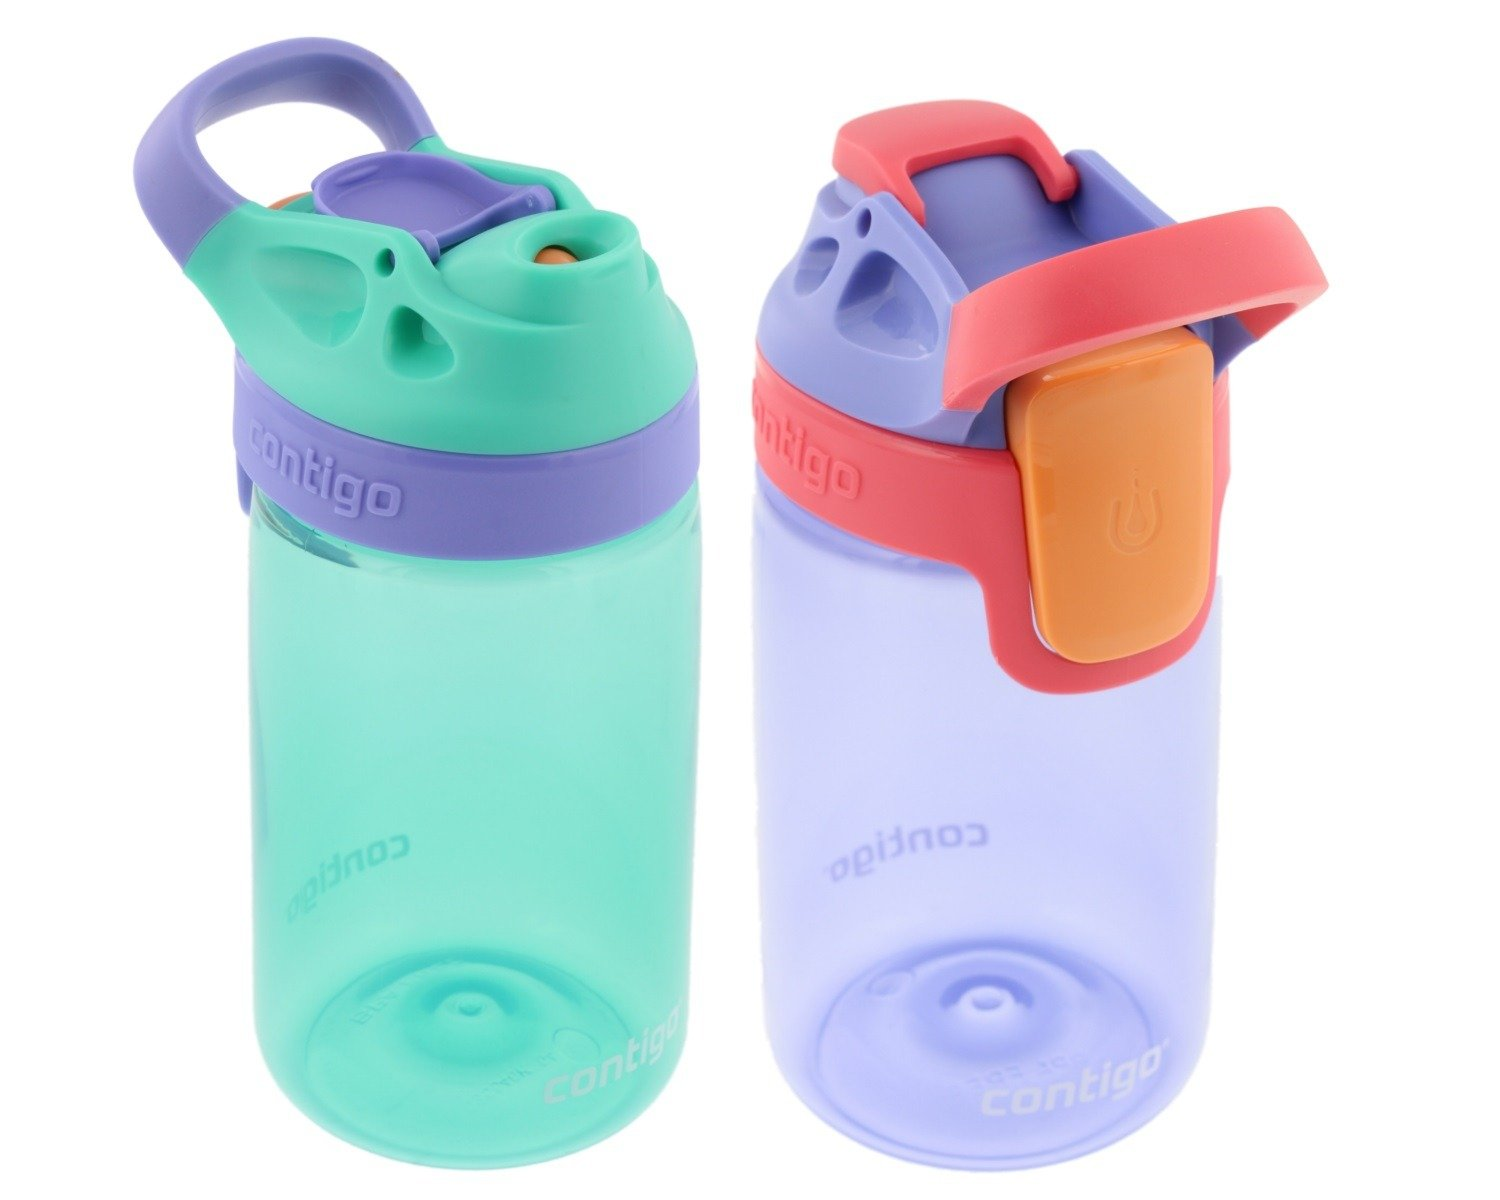 Contigo 14oz Kids Autoseal Gizmo Sip Water Bottles- Persian Green/Lavender (2 Pack) - Perfect for Children & Parents on the Go